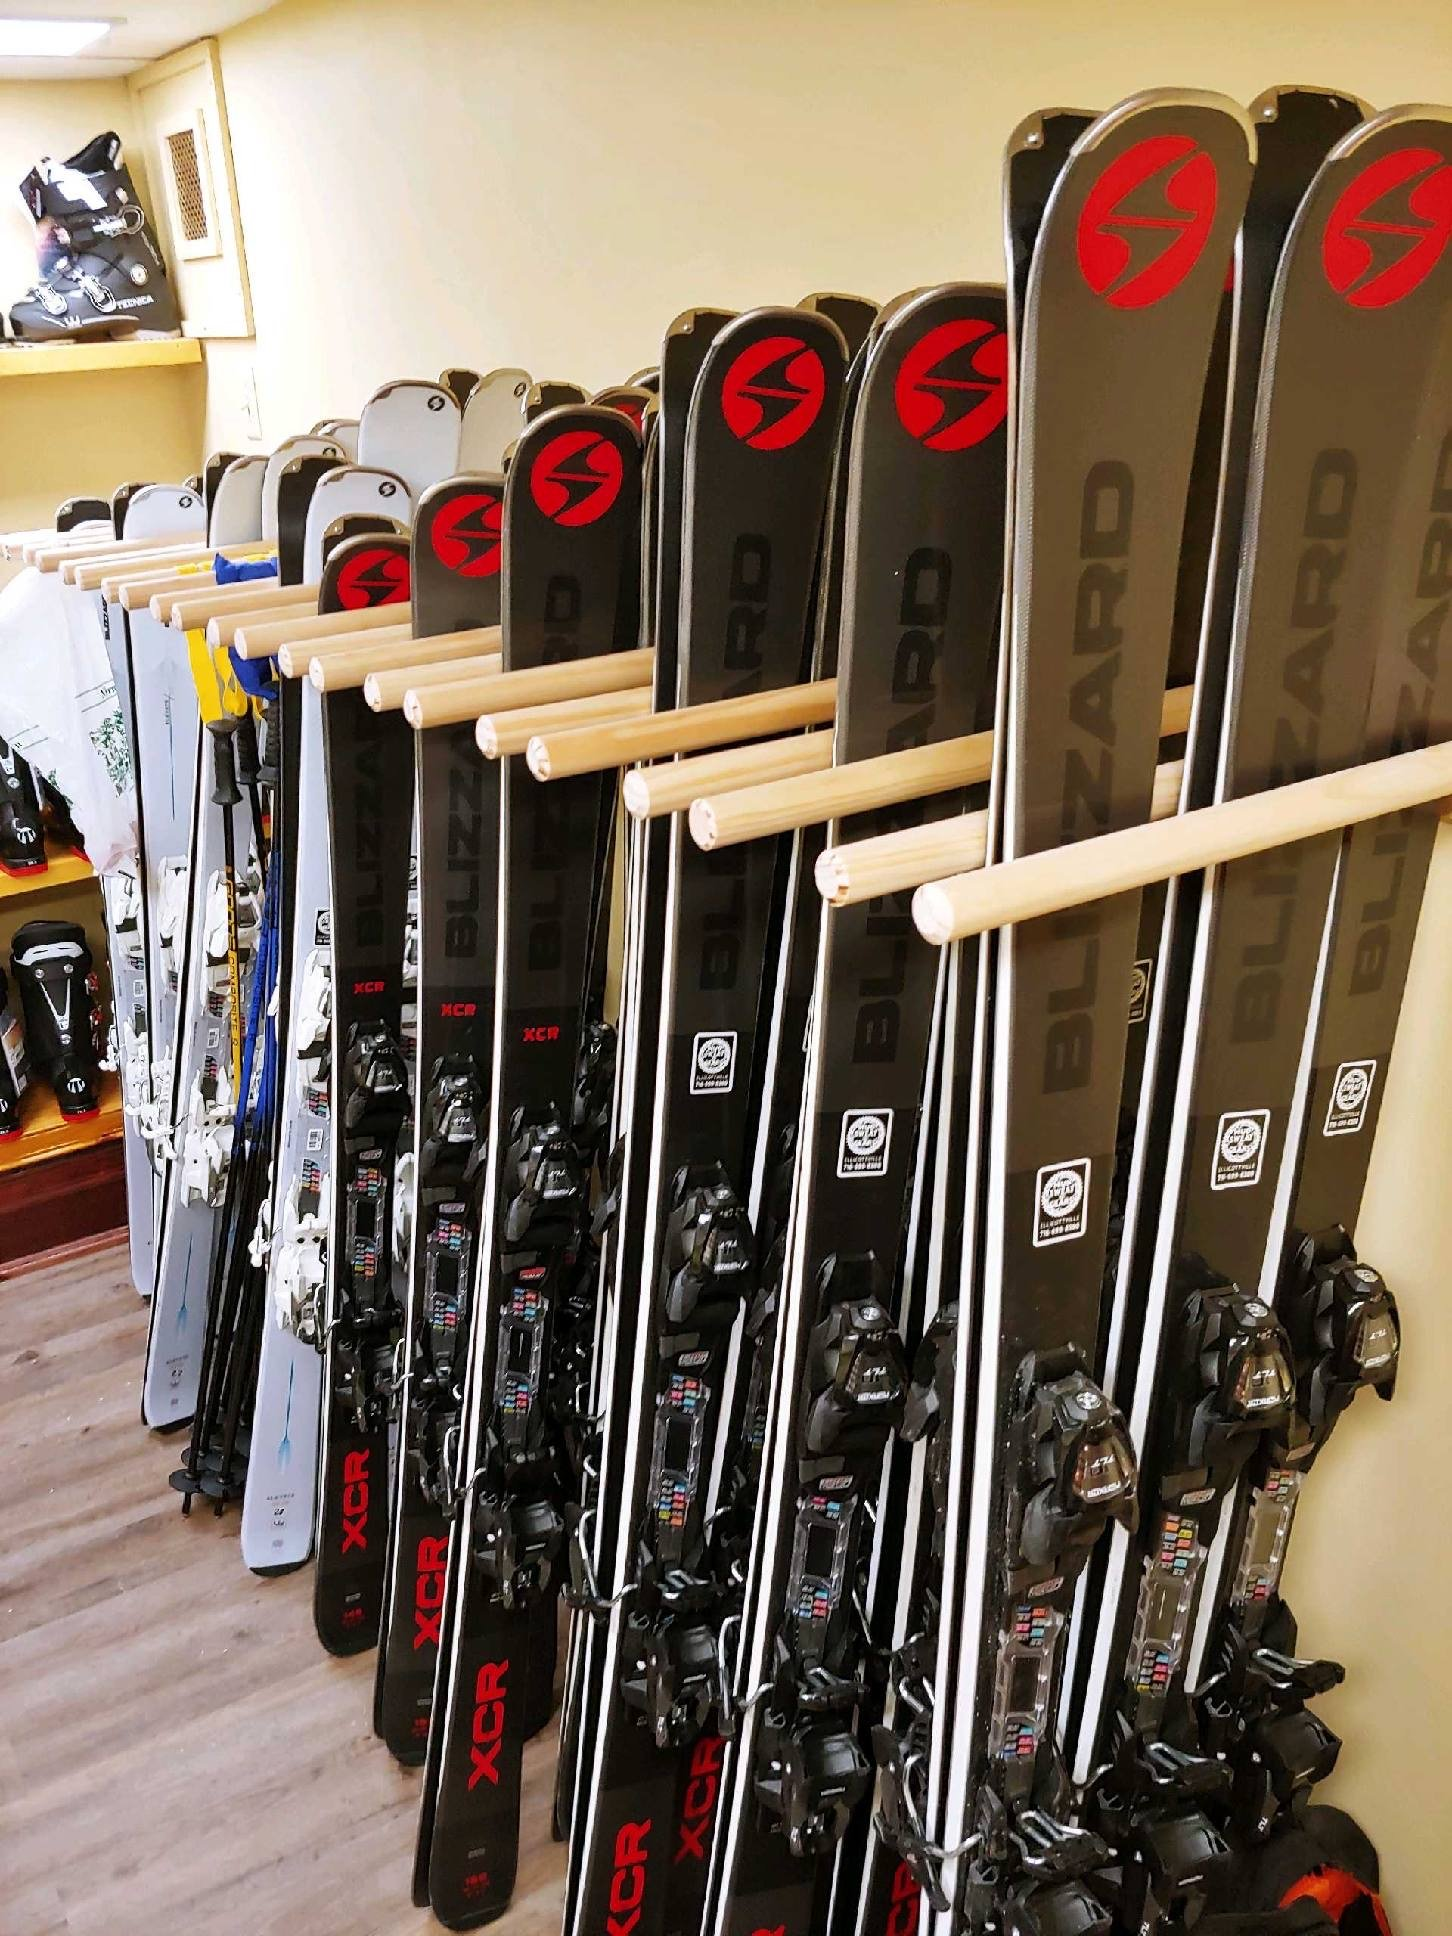 Multiple rental skis leaning against a wall in their holders